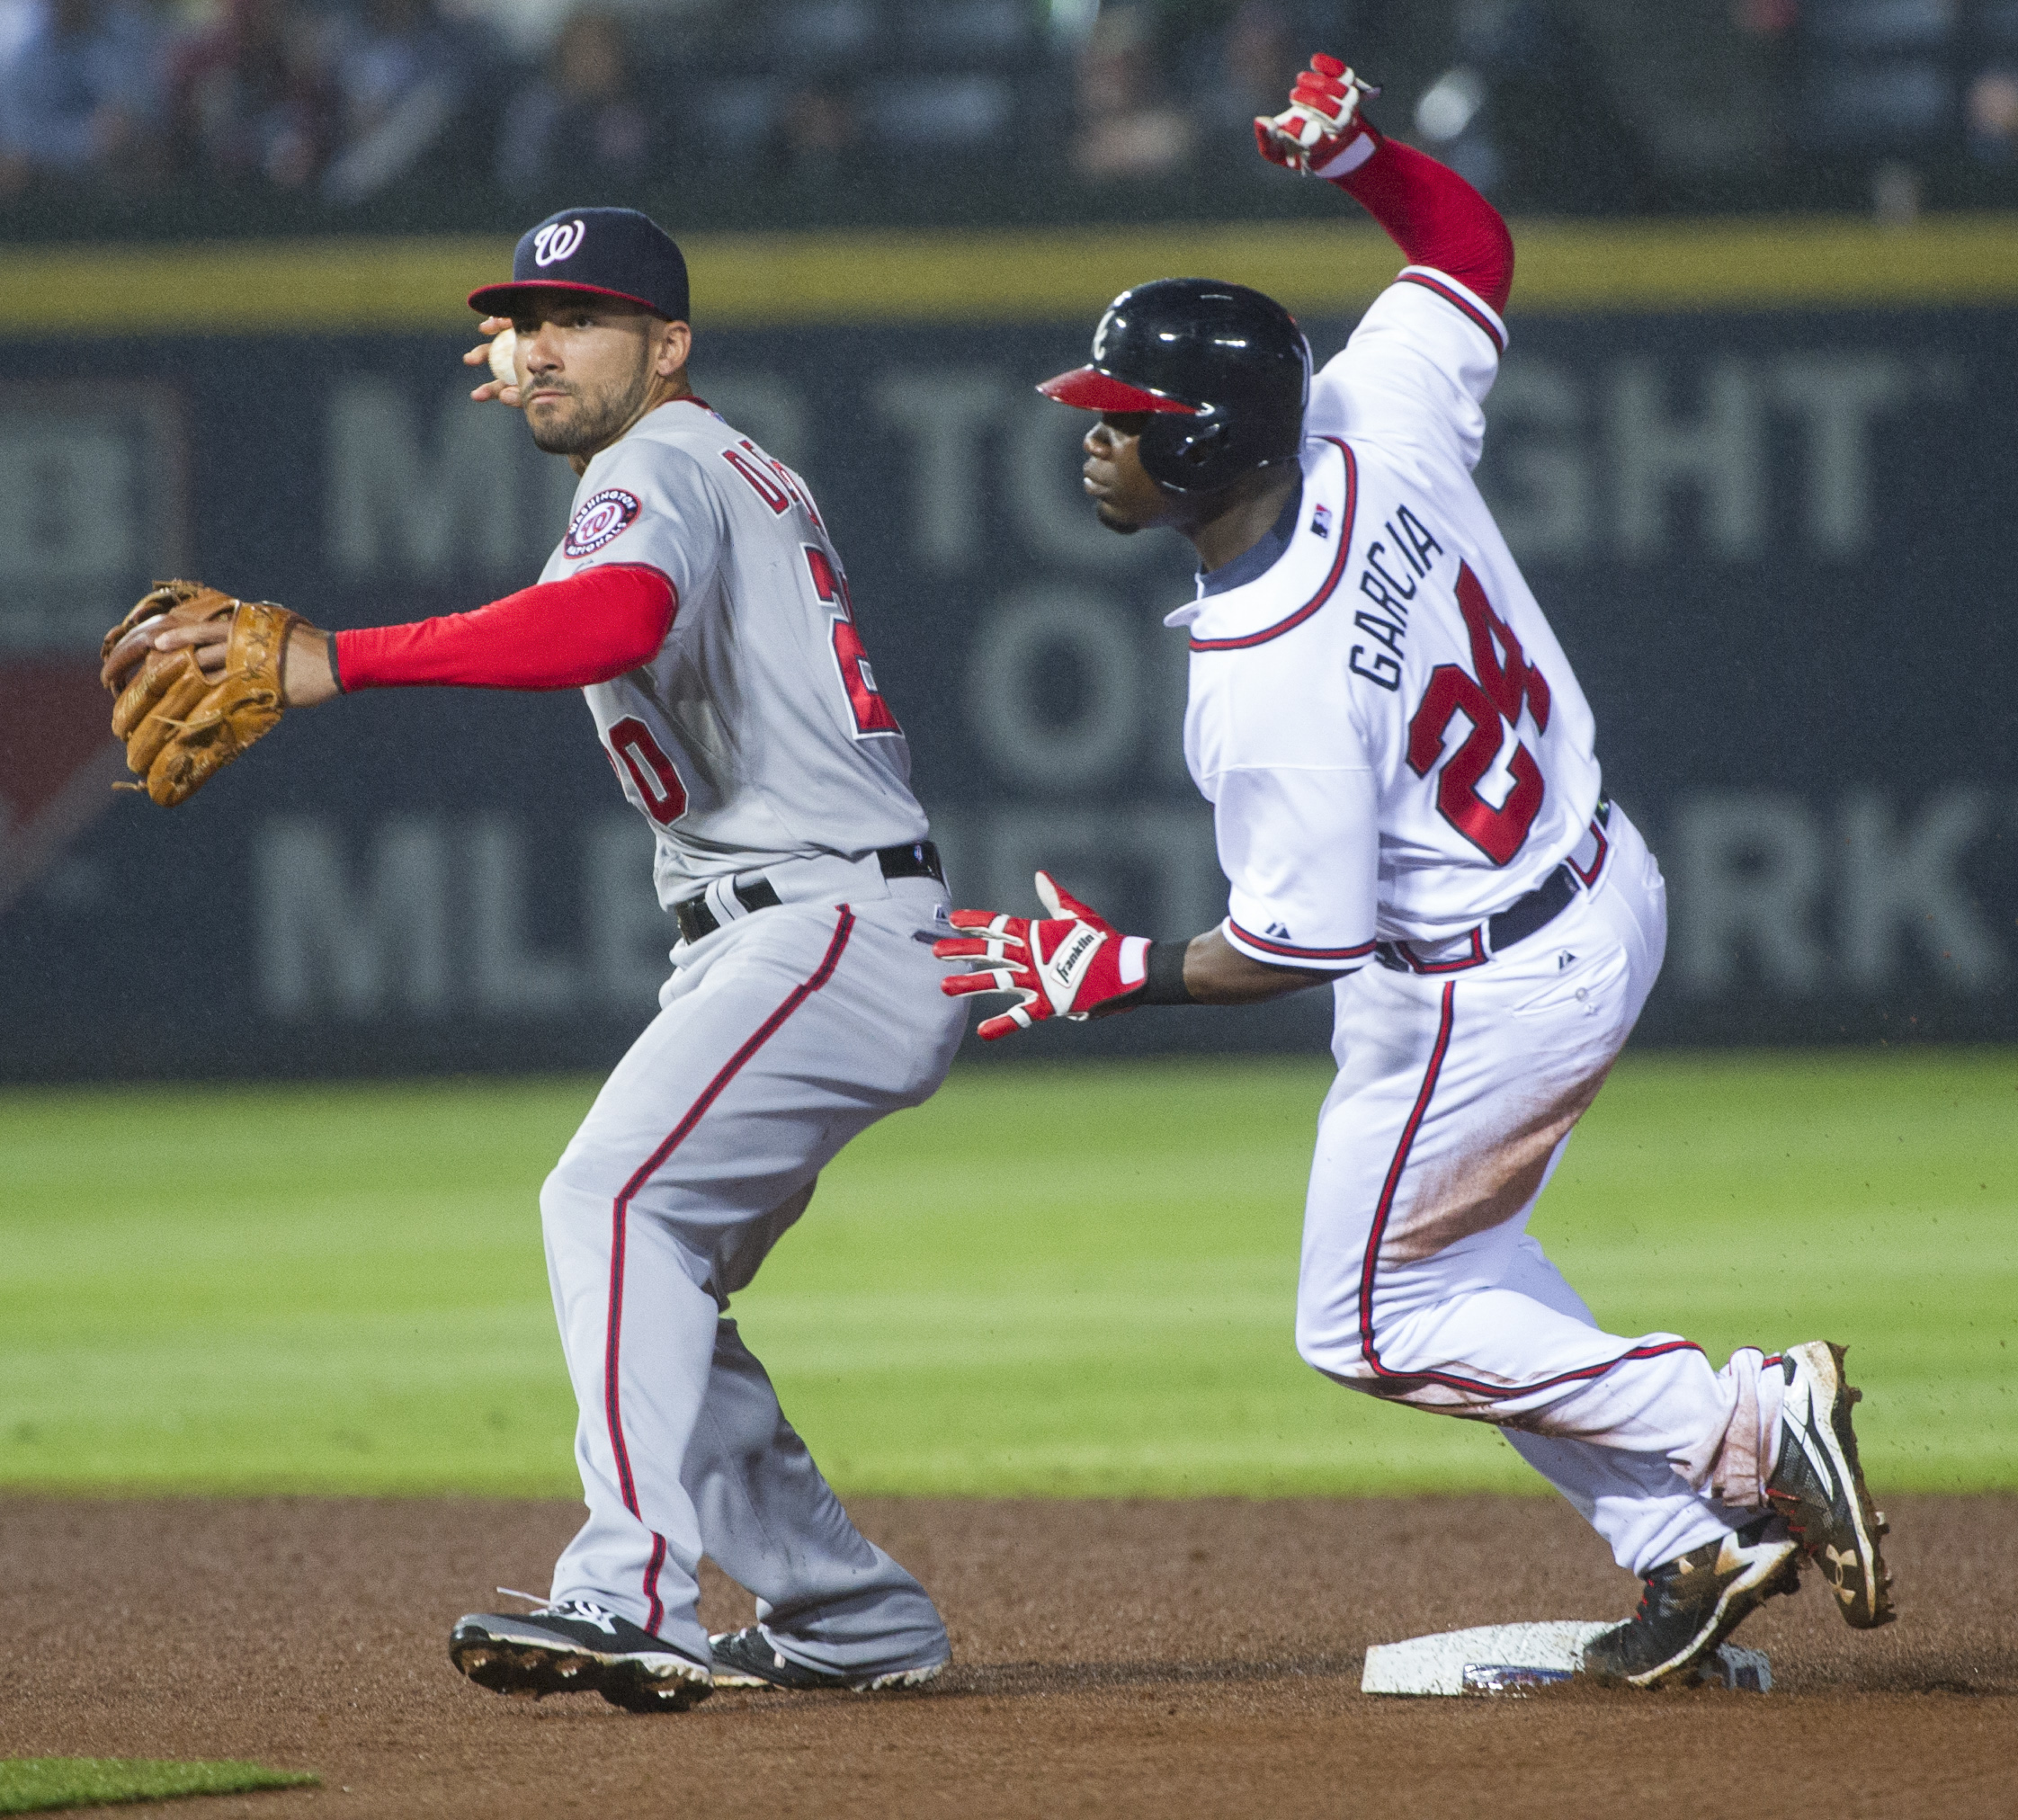 Atlanta Braves' Adonis Garcia (24) comes up after being forced out by Washington Nationals shortstop Ian Desmond on a single by Nick Swisher during the fourth inning of a baseball game, Thursday, Oct. 1, 2015, in Atlanta. (AP Photo/John Amis)